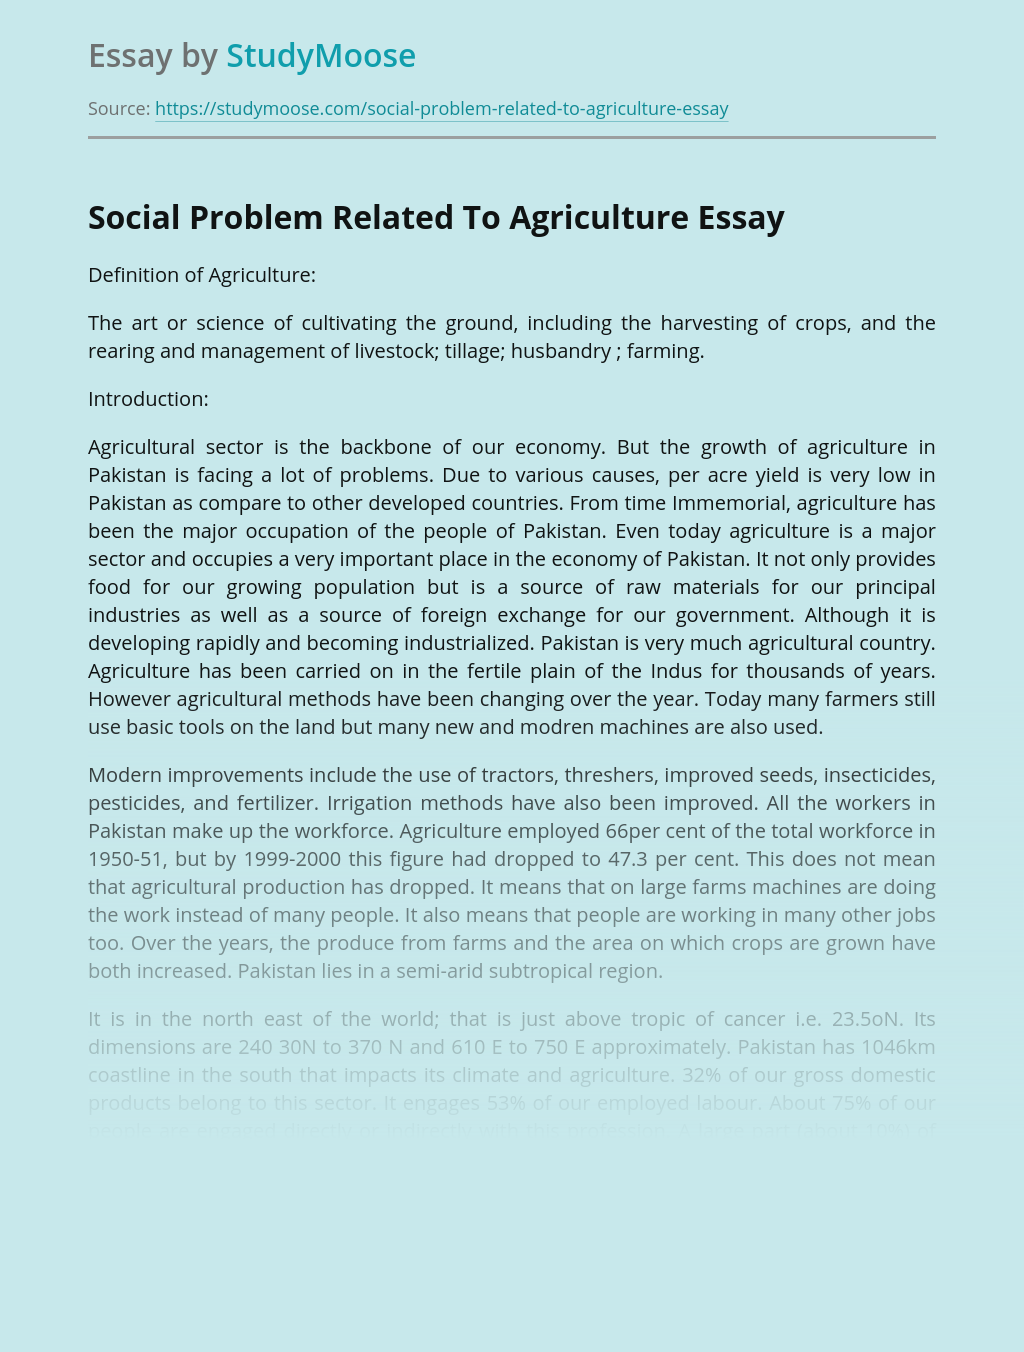 Social Problem Related To Agriculture